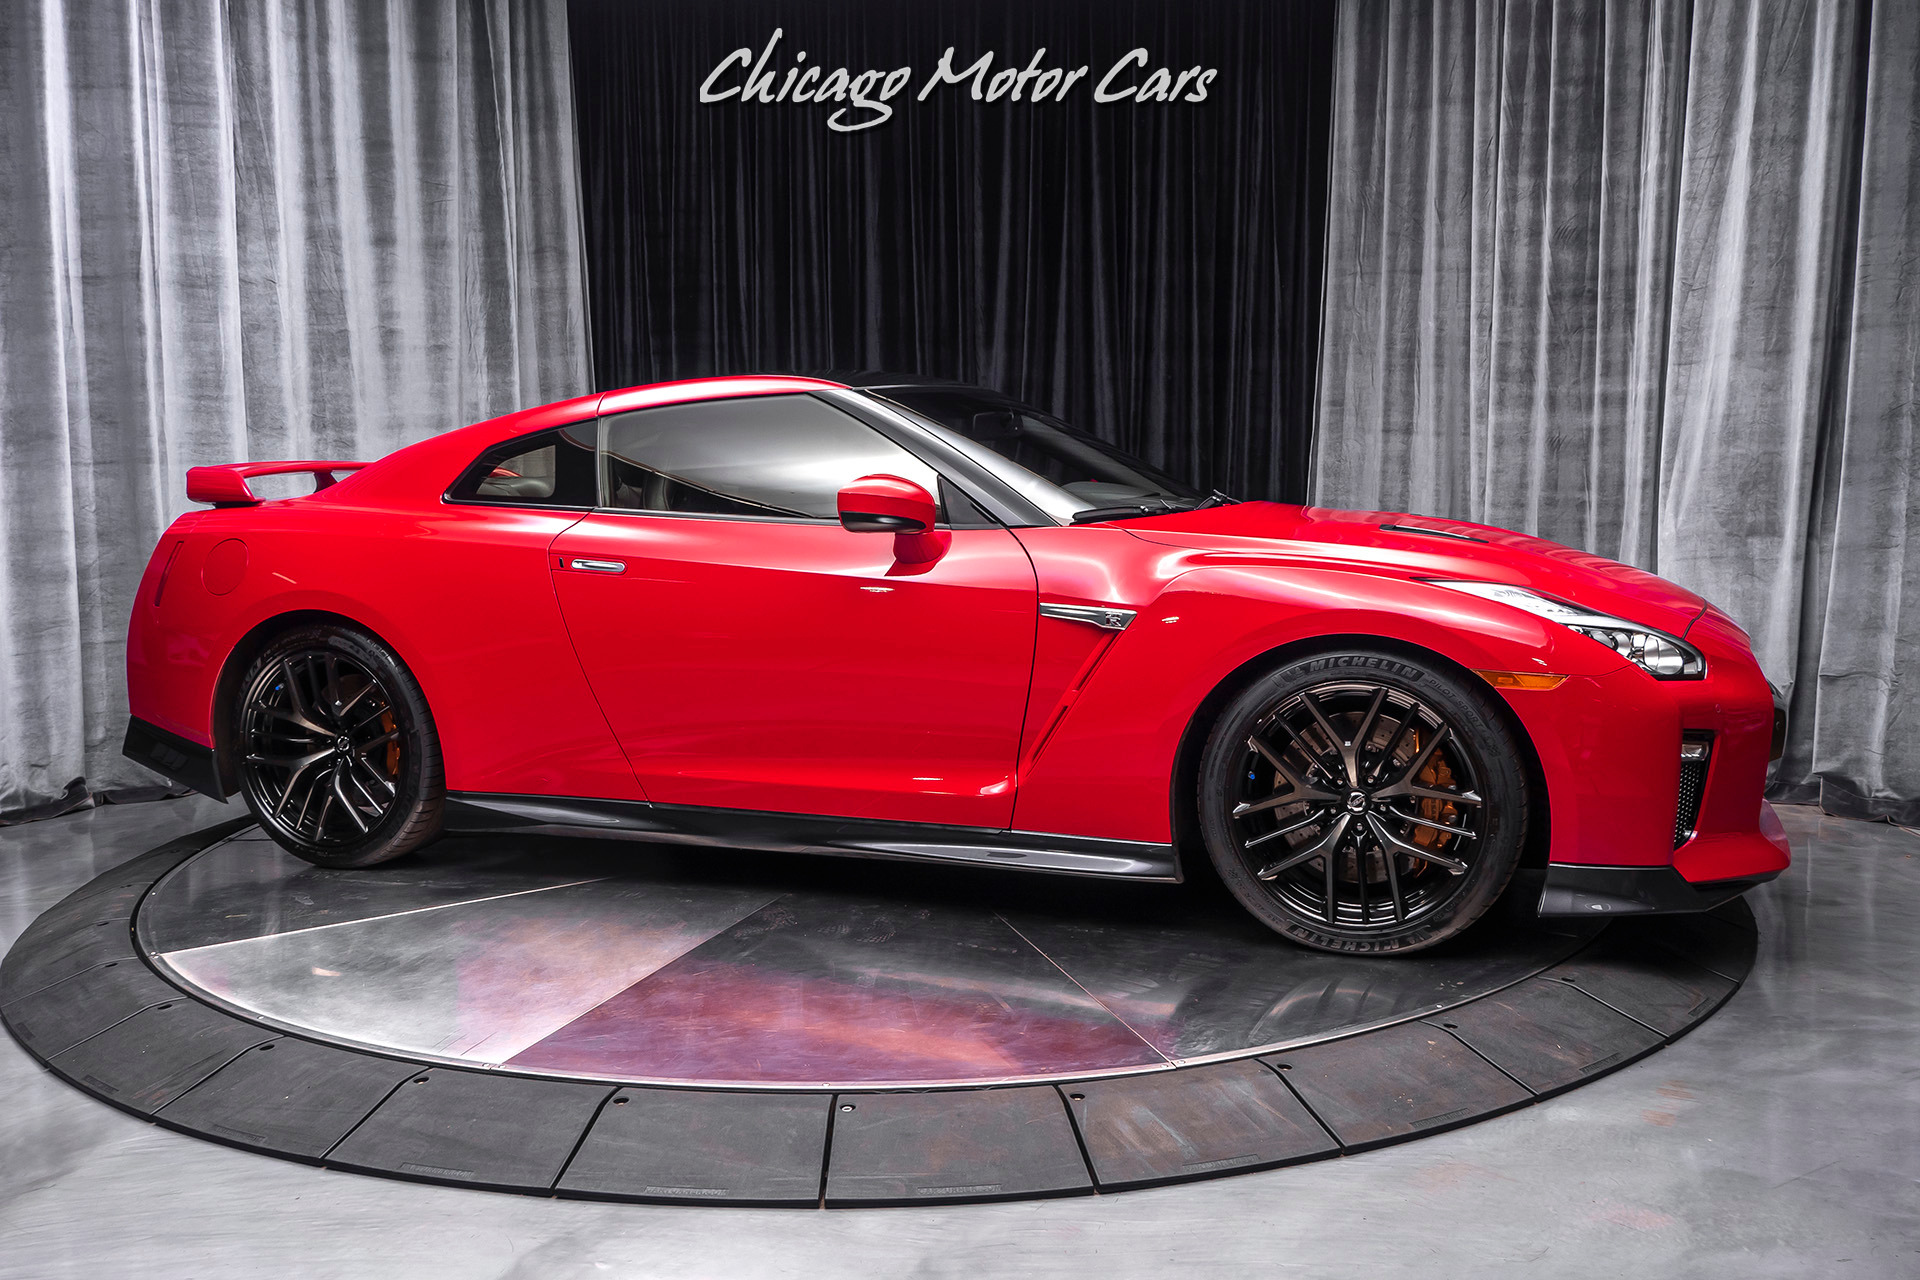 Used-2017-Nissan-GT-R-Premium-Coupe-UPGRADES-600-HP